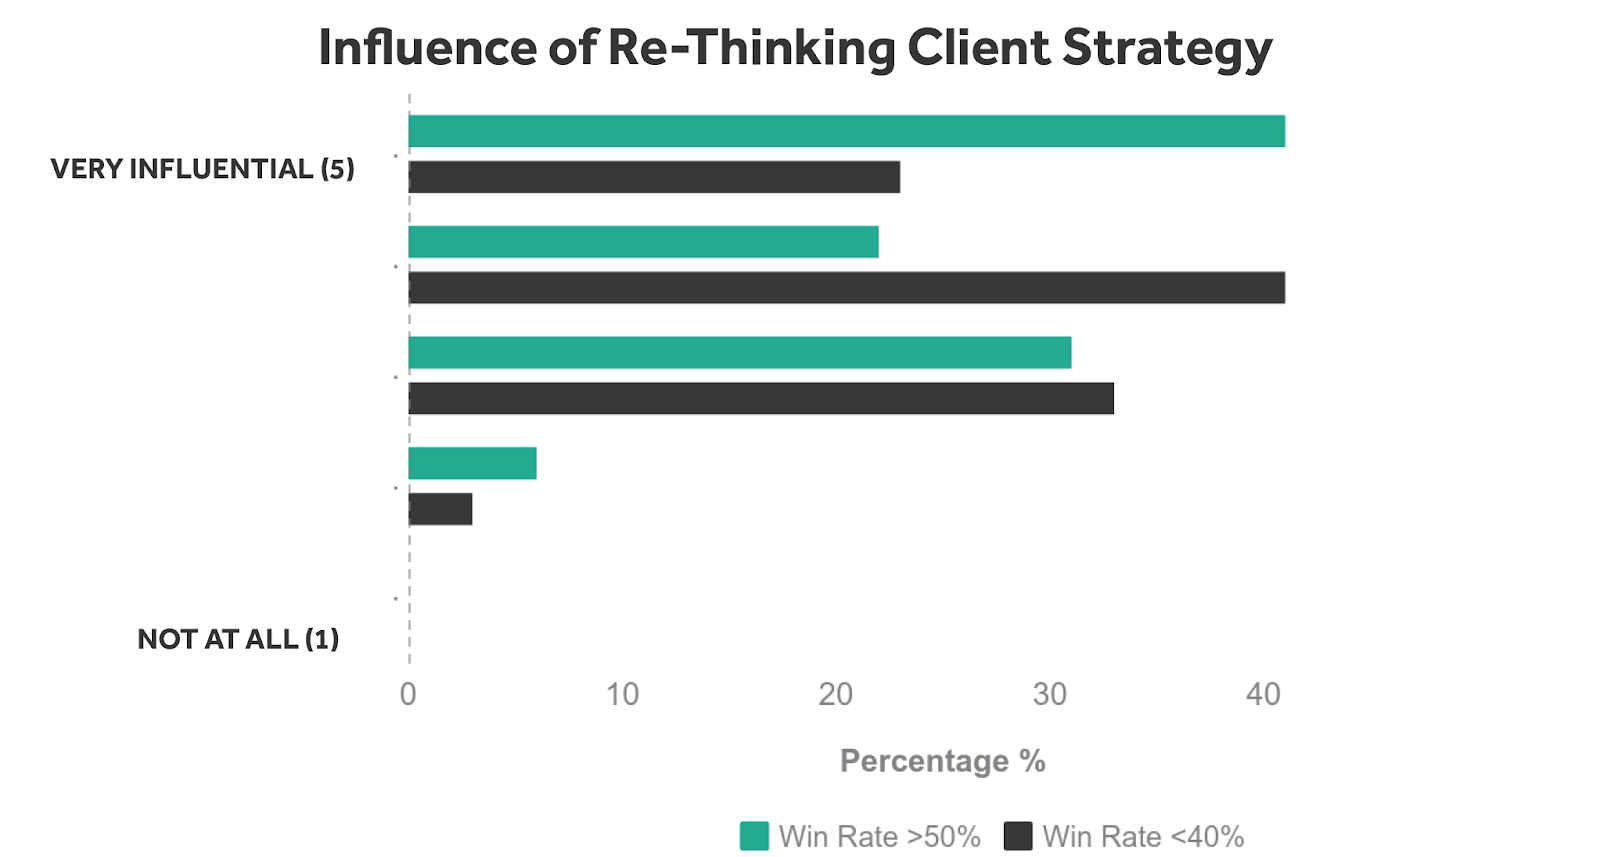 In The Vennli Study Mentioned Previously Creativity And The Ability To Deliver Unique Strategies Was Cited As The Main Characteristic Of Winning Pitches